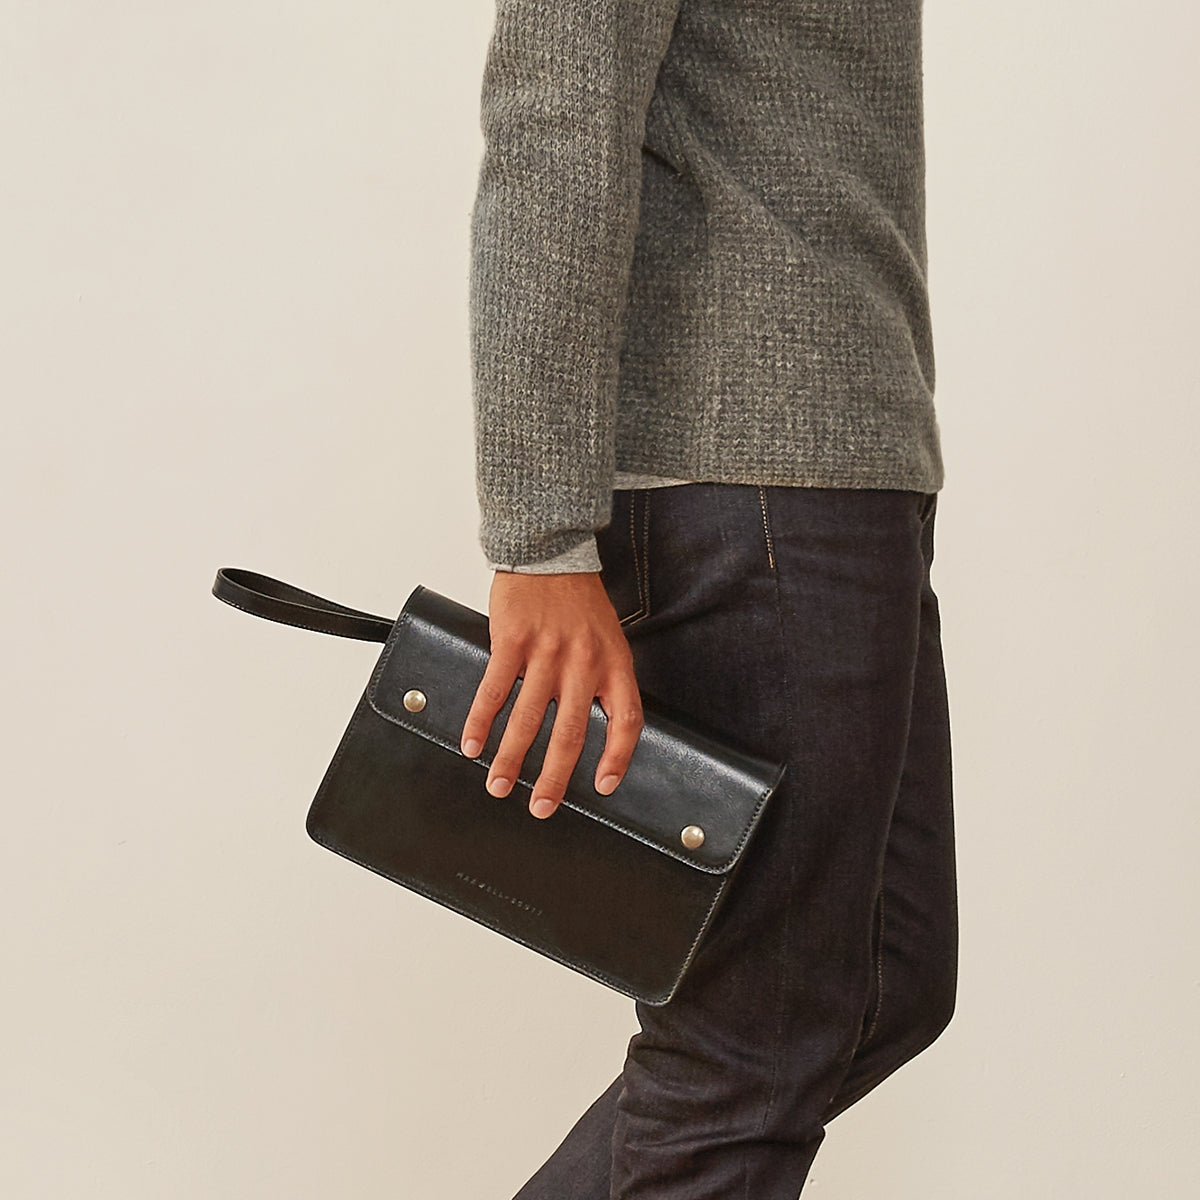 Image 6 of the 'Santino' Black Handmade Veg-Tanned Leather Wrist Bag